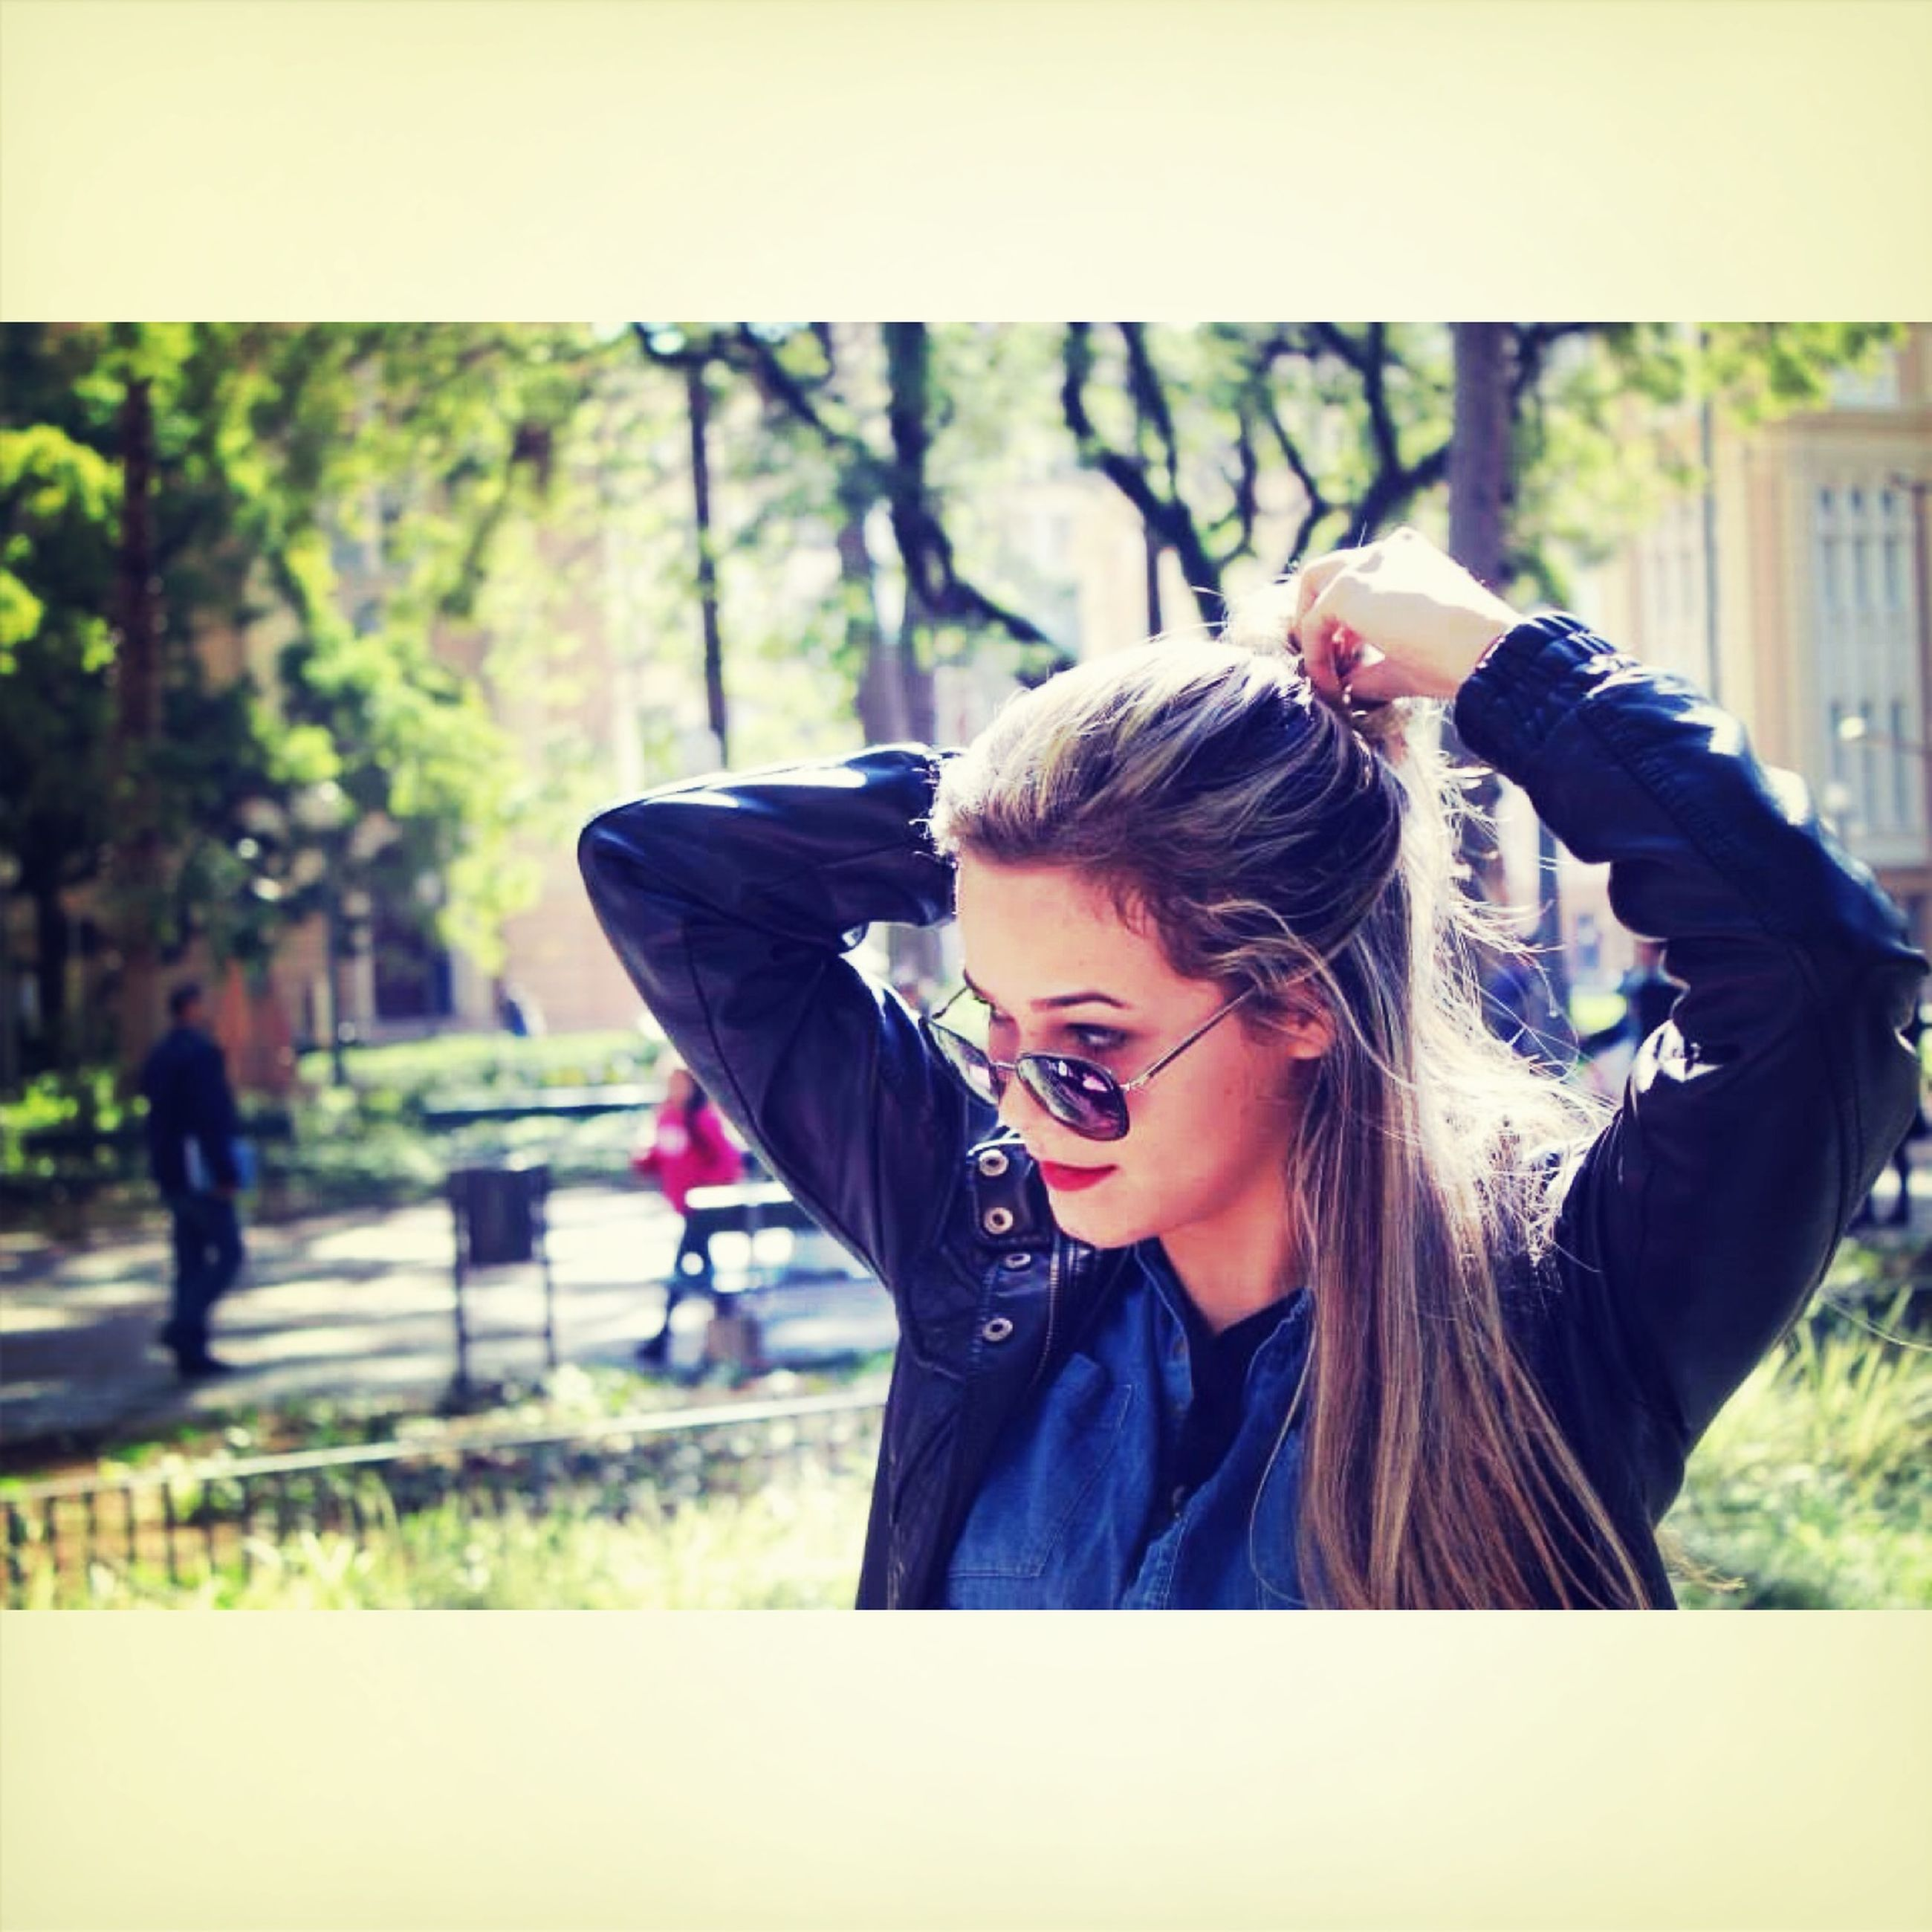 lifestyles, person, young adult, focus on foreground, leisure activity, casual clothing, young women, transfer print, side view, waist up, long hair, holding, sitting, smiling, auto post production filter, tree, three quarter length, headshot